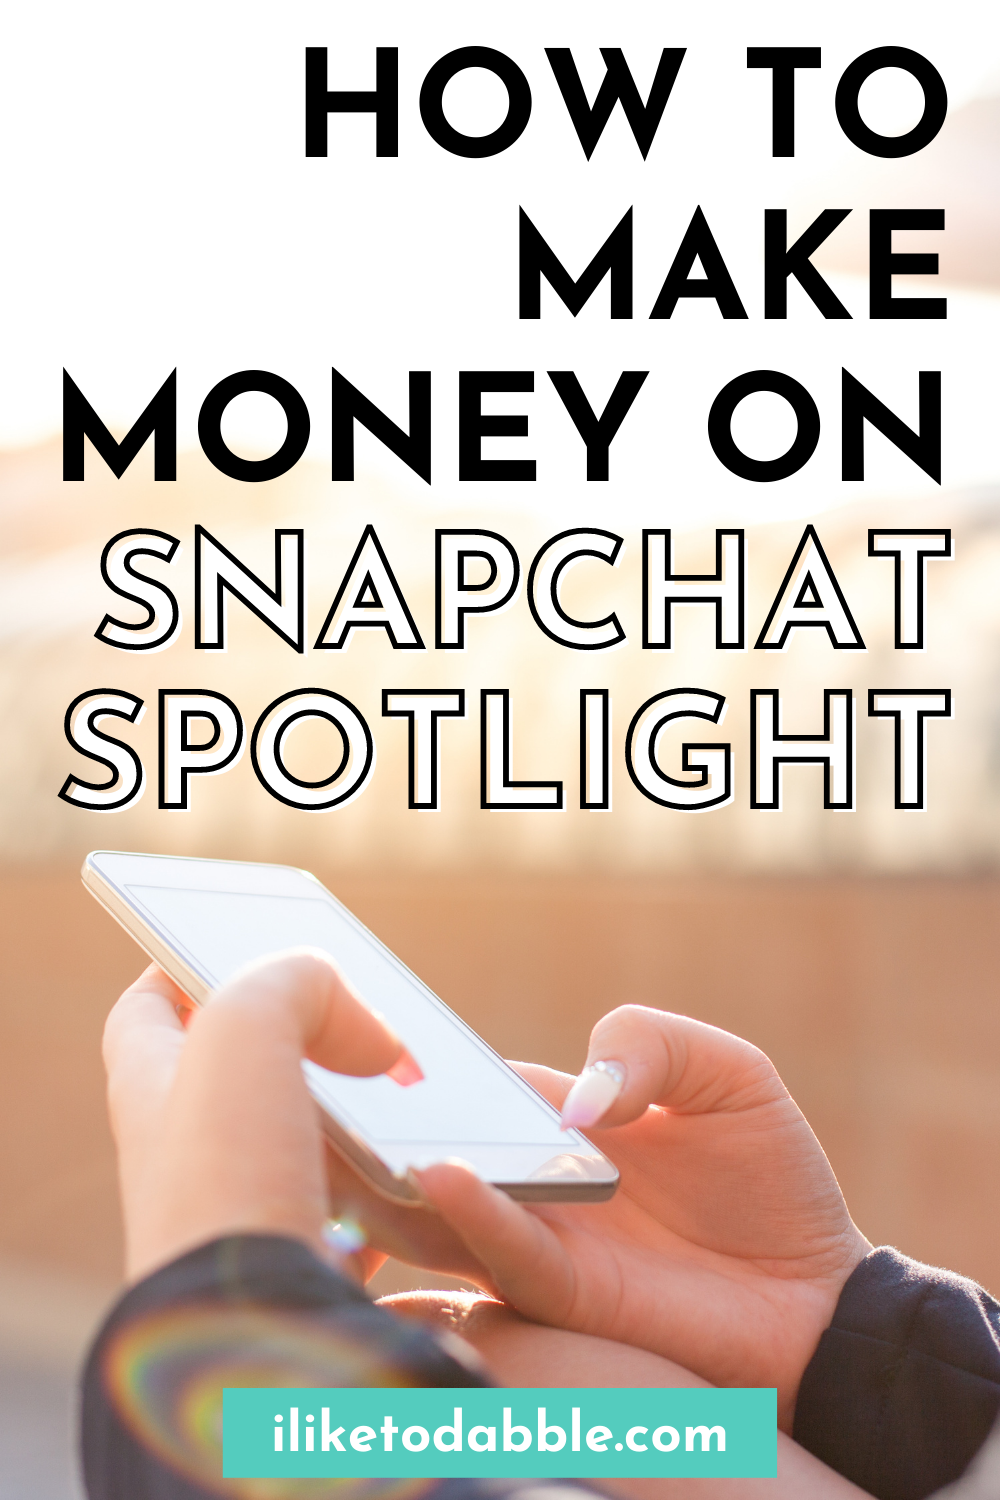 how to make money on snapchat pinnable image (1)